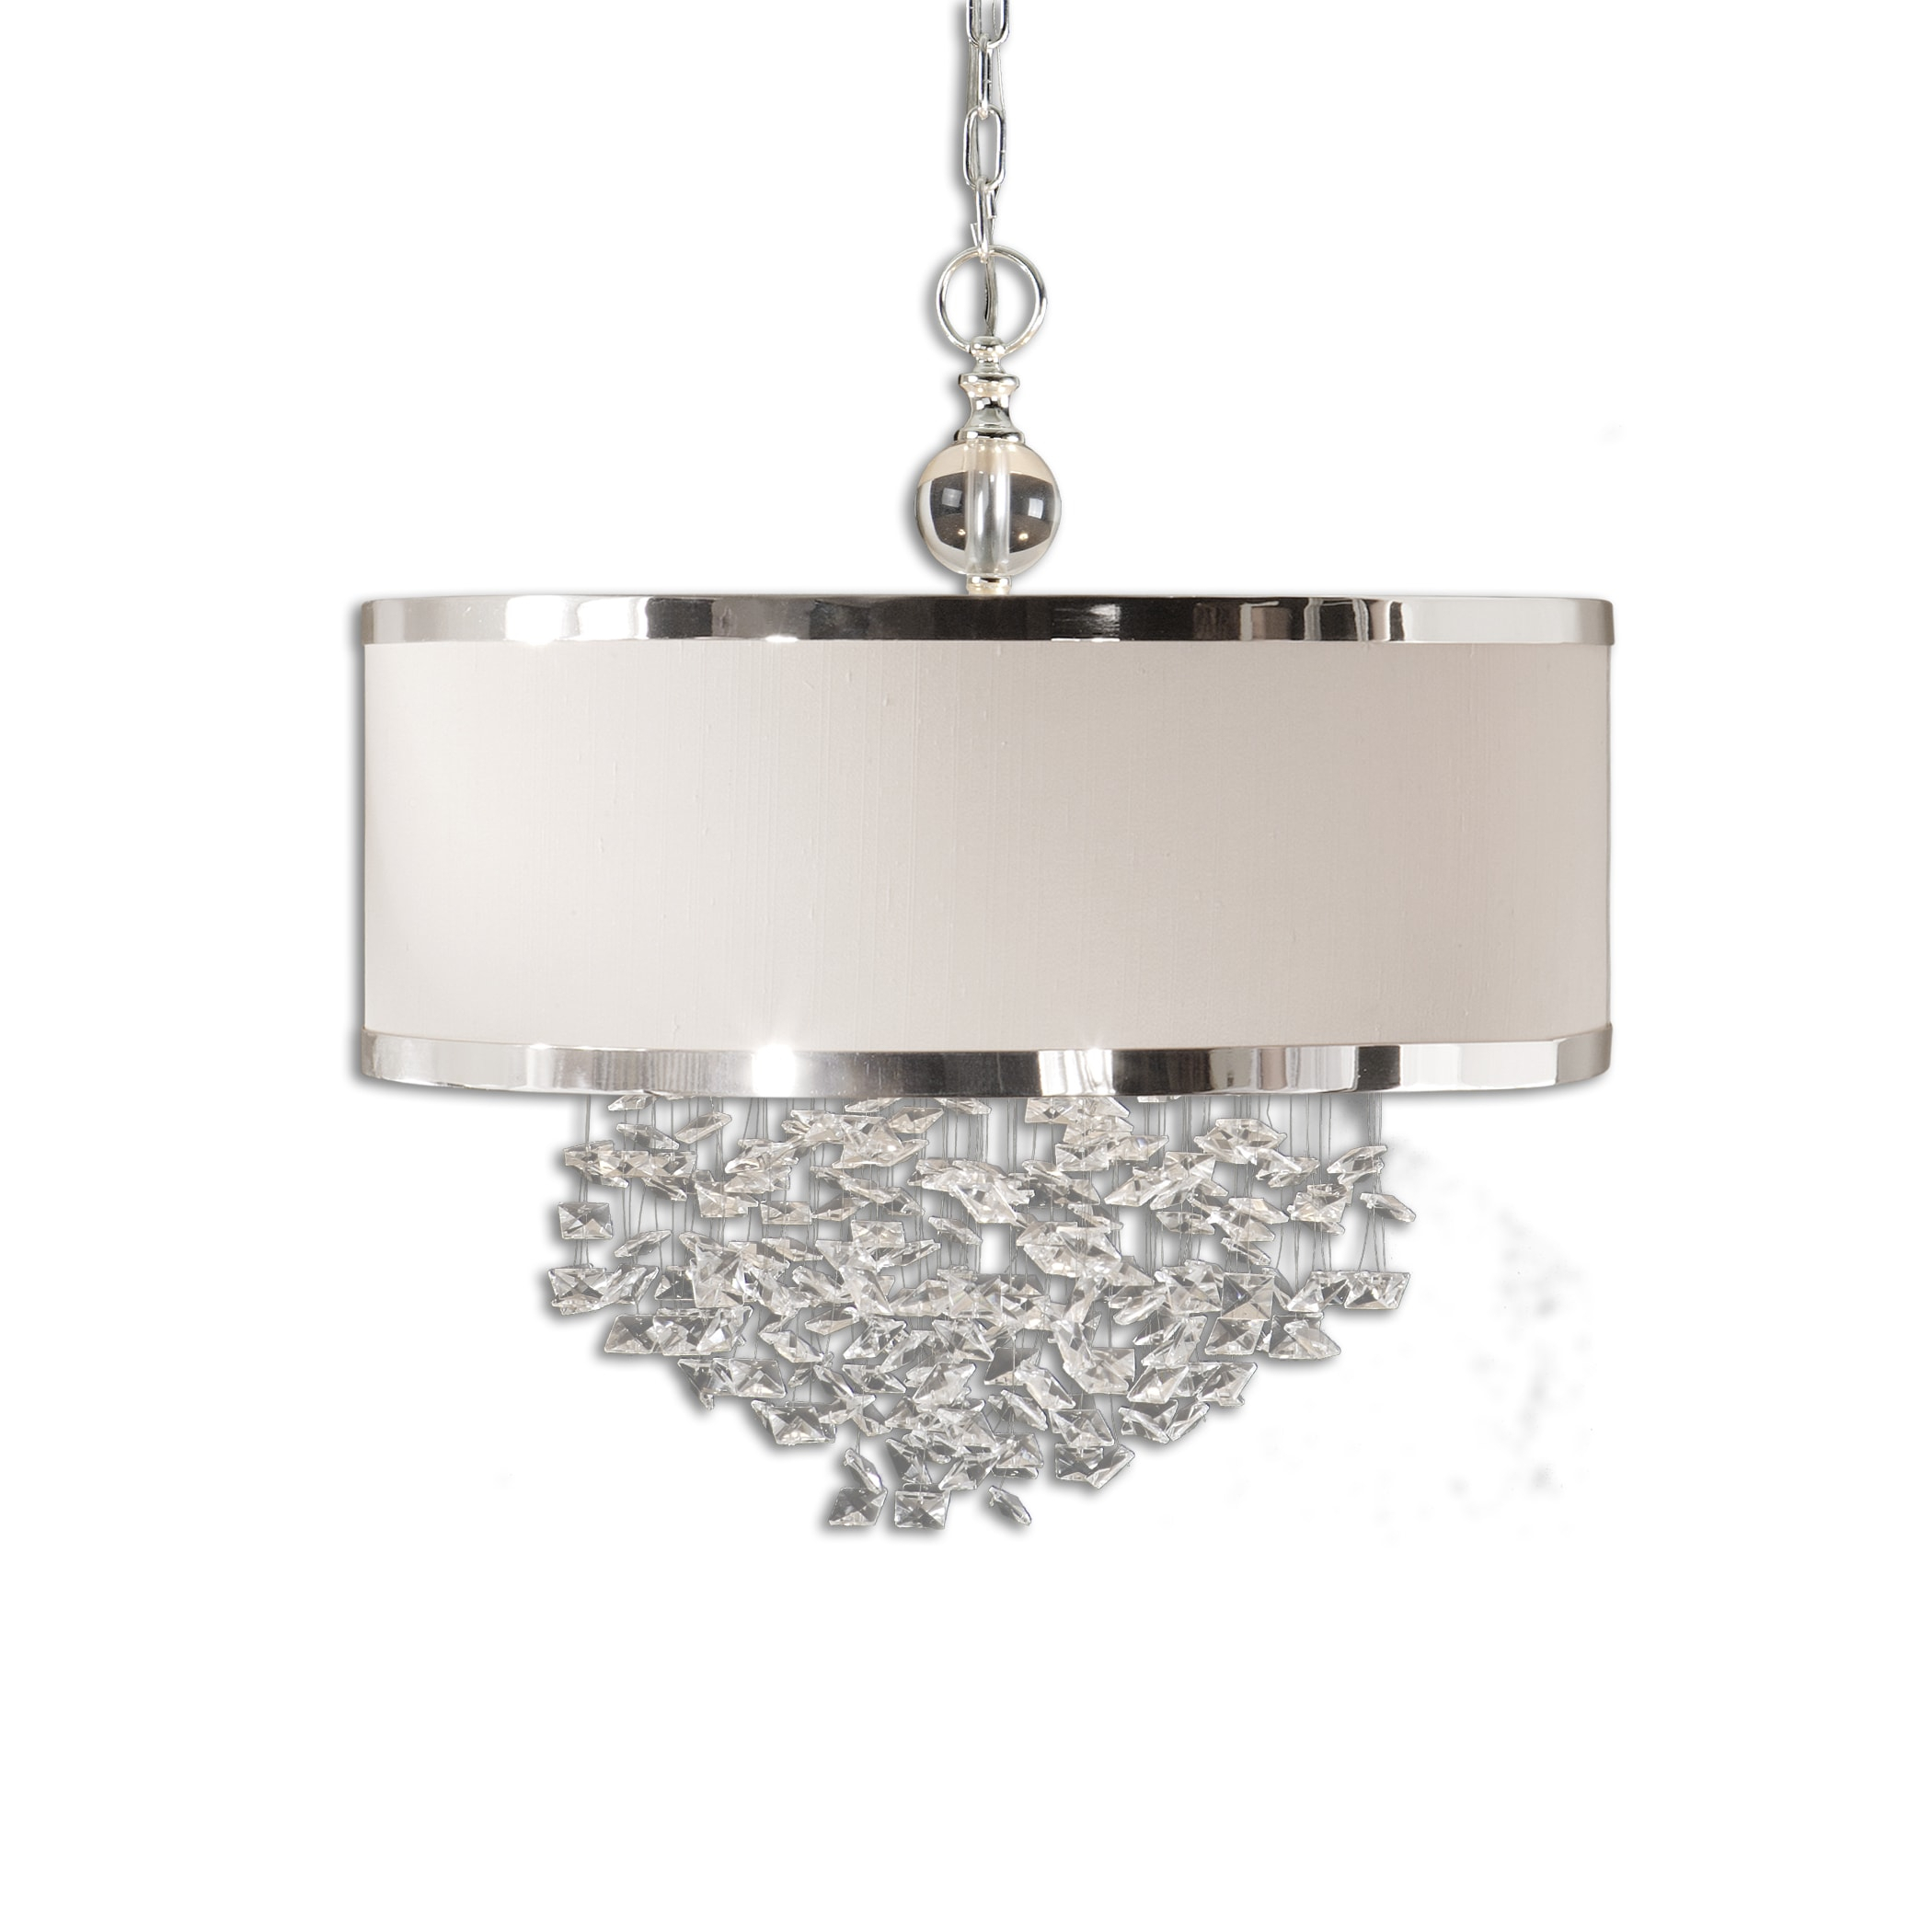 Fascination 3 Light Slken Drum Pendantuttermost - 22 W X 23 H pertaining to 3-Light Single Urn Pendants (Image 13 of 30)